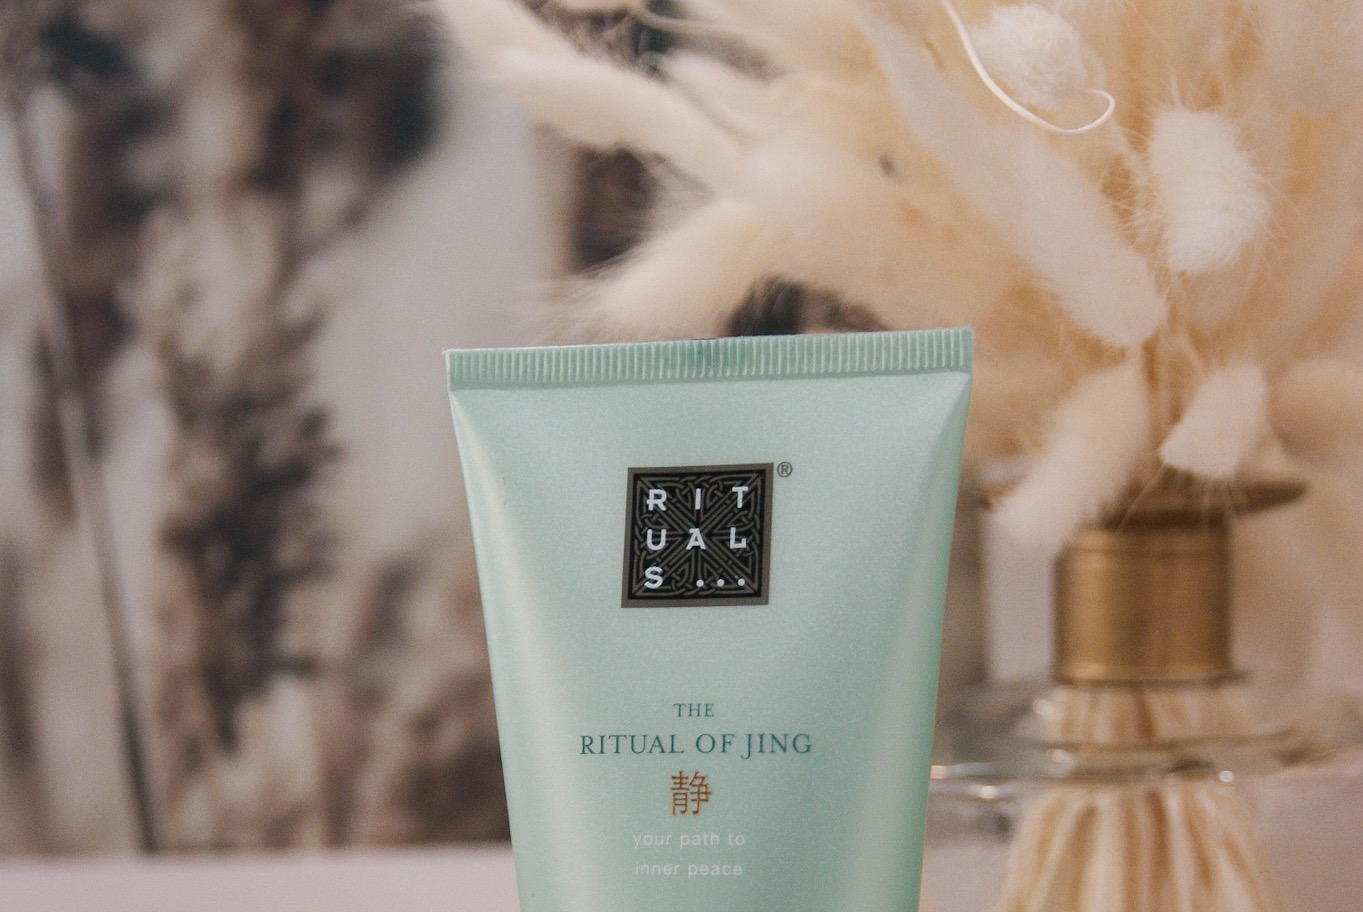 Rituals: The Ritual of Jing